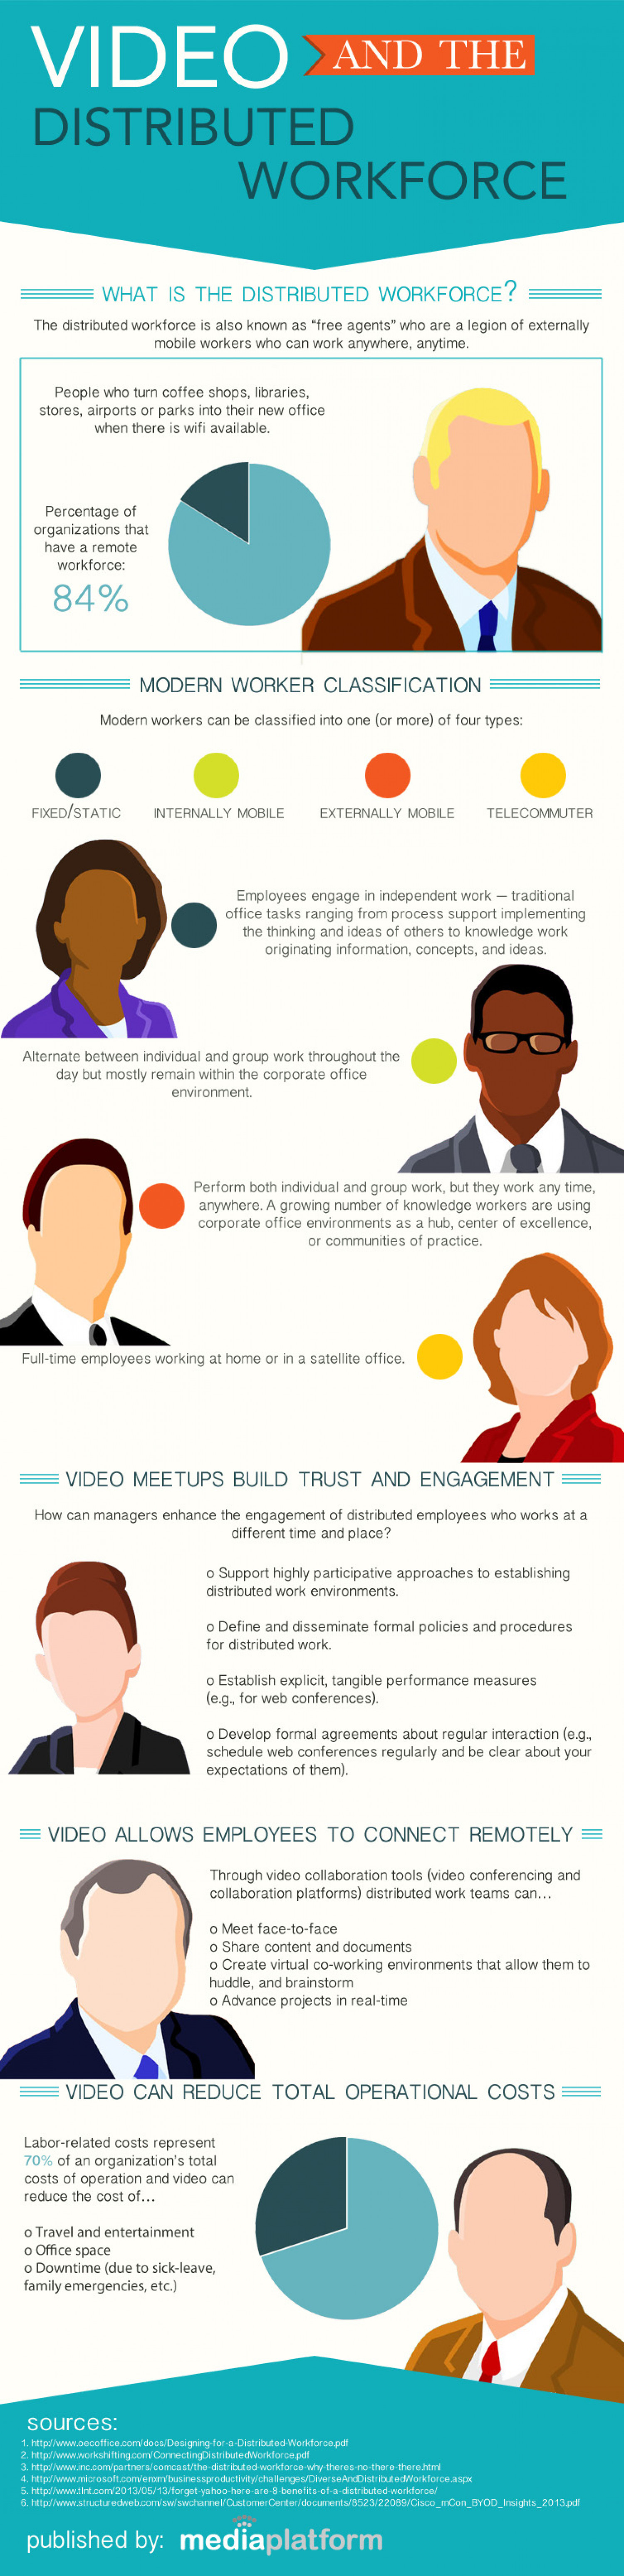 Video and the Distributed Workforce  Infographic